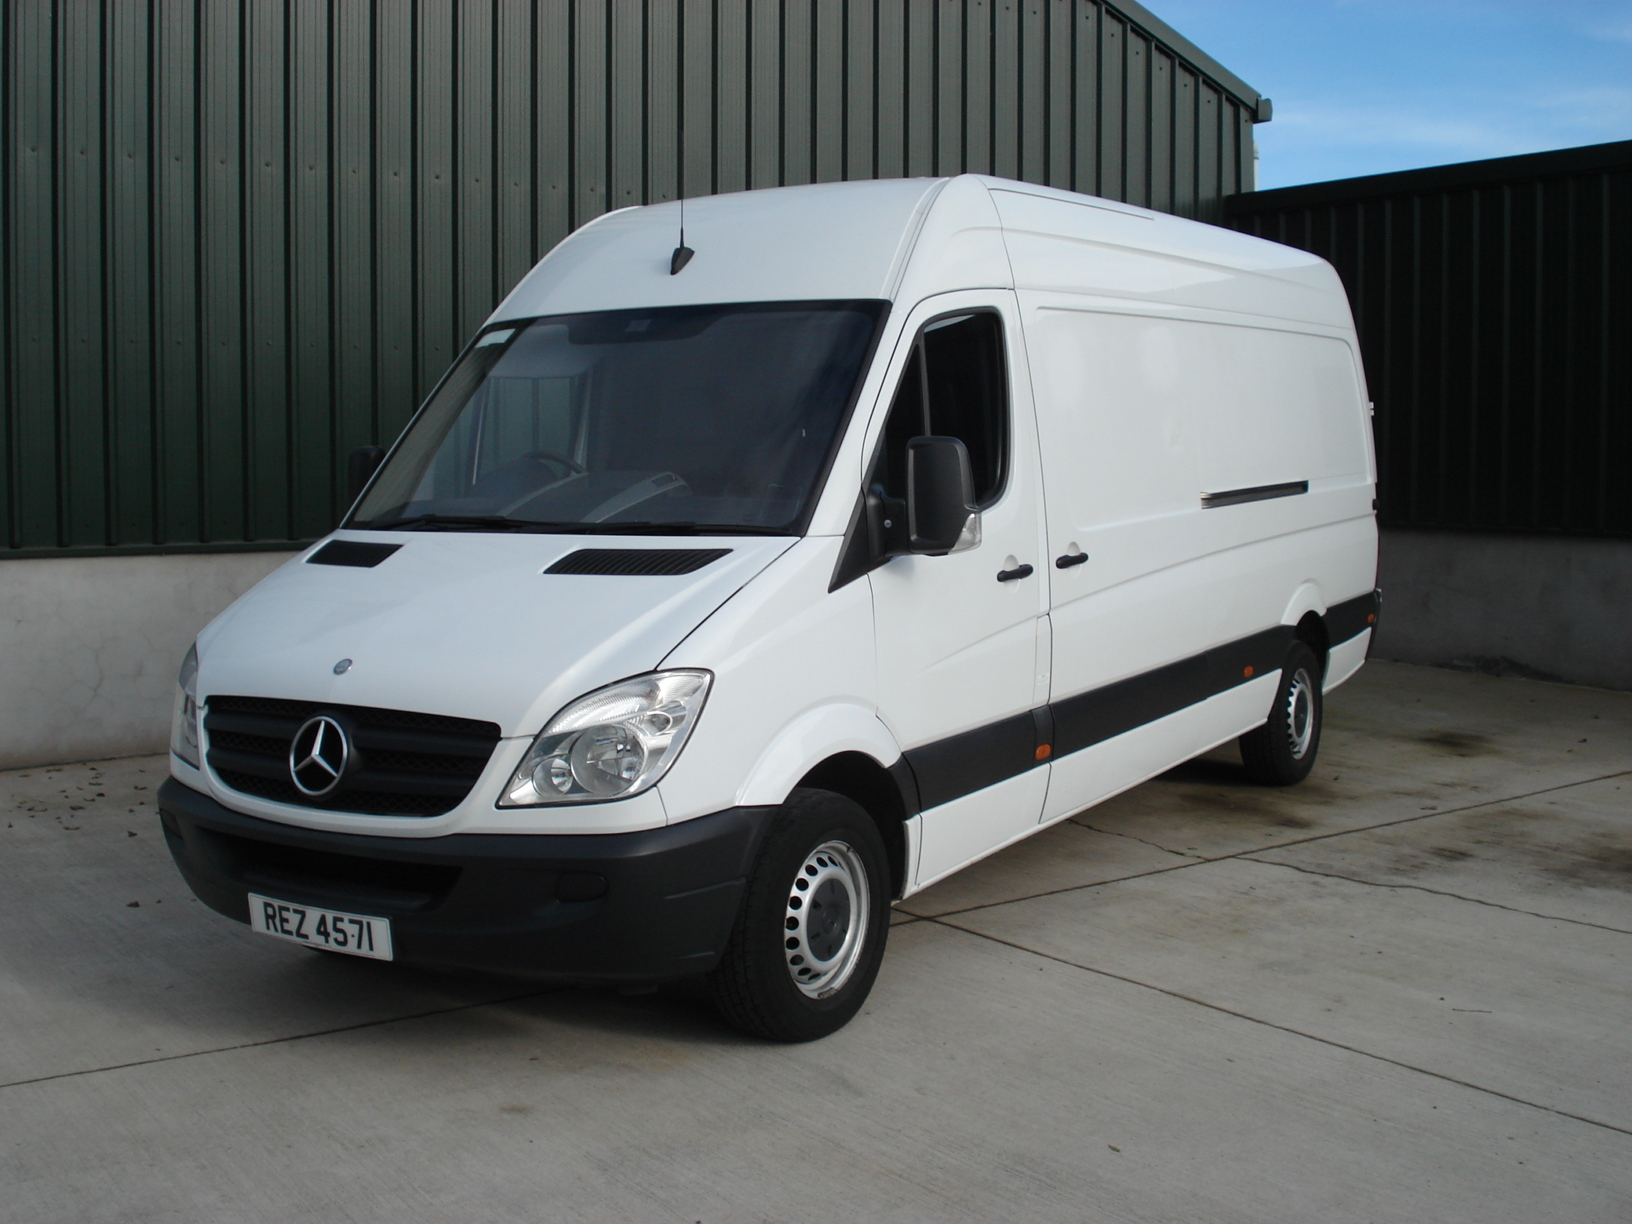 Mercedes-Benz Sprinter 311 2008 photo - 11